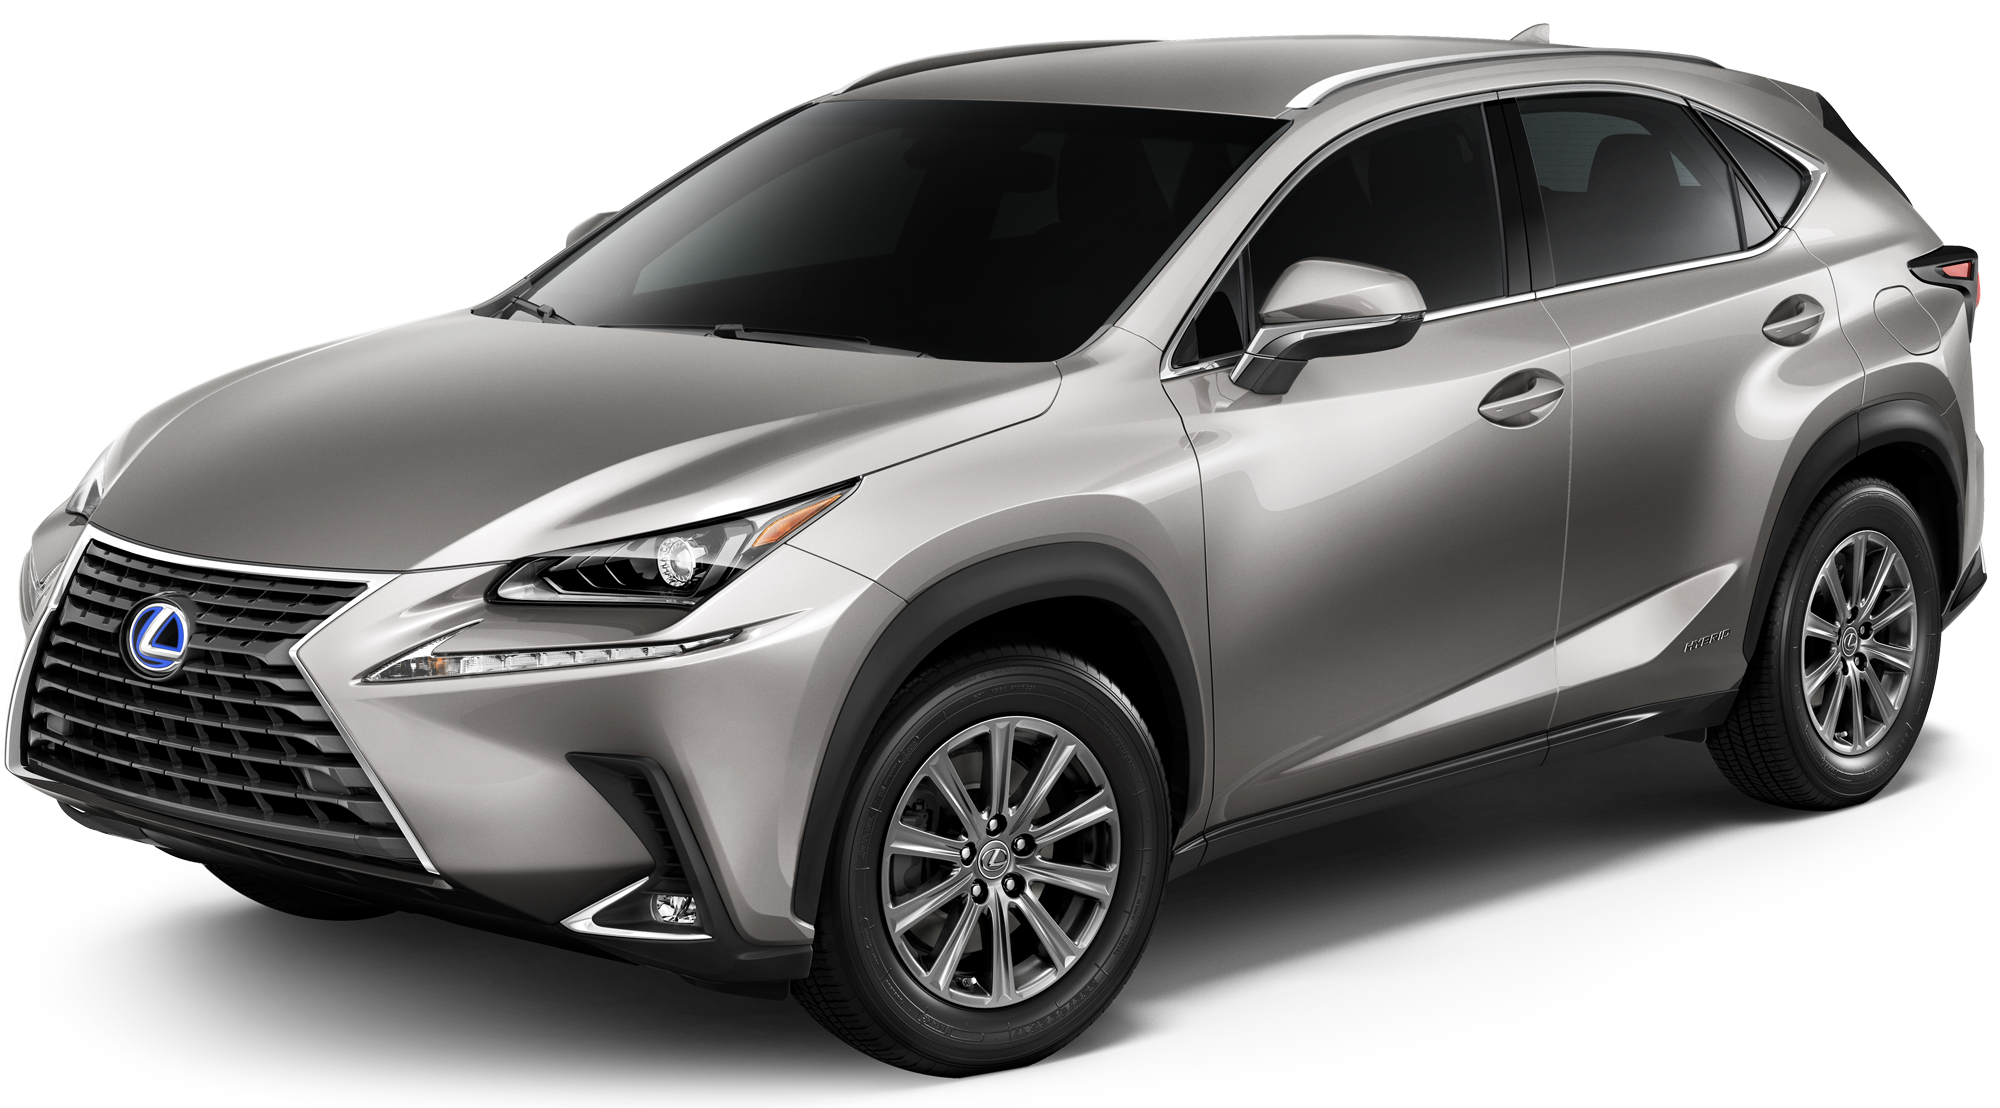 2019 lexus nx 300h incentives  specials  u0026 offers in plano tx